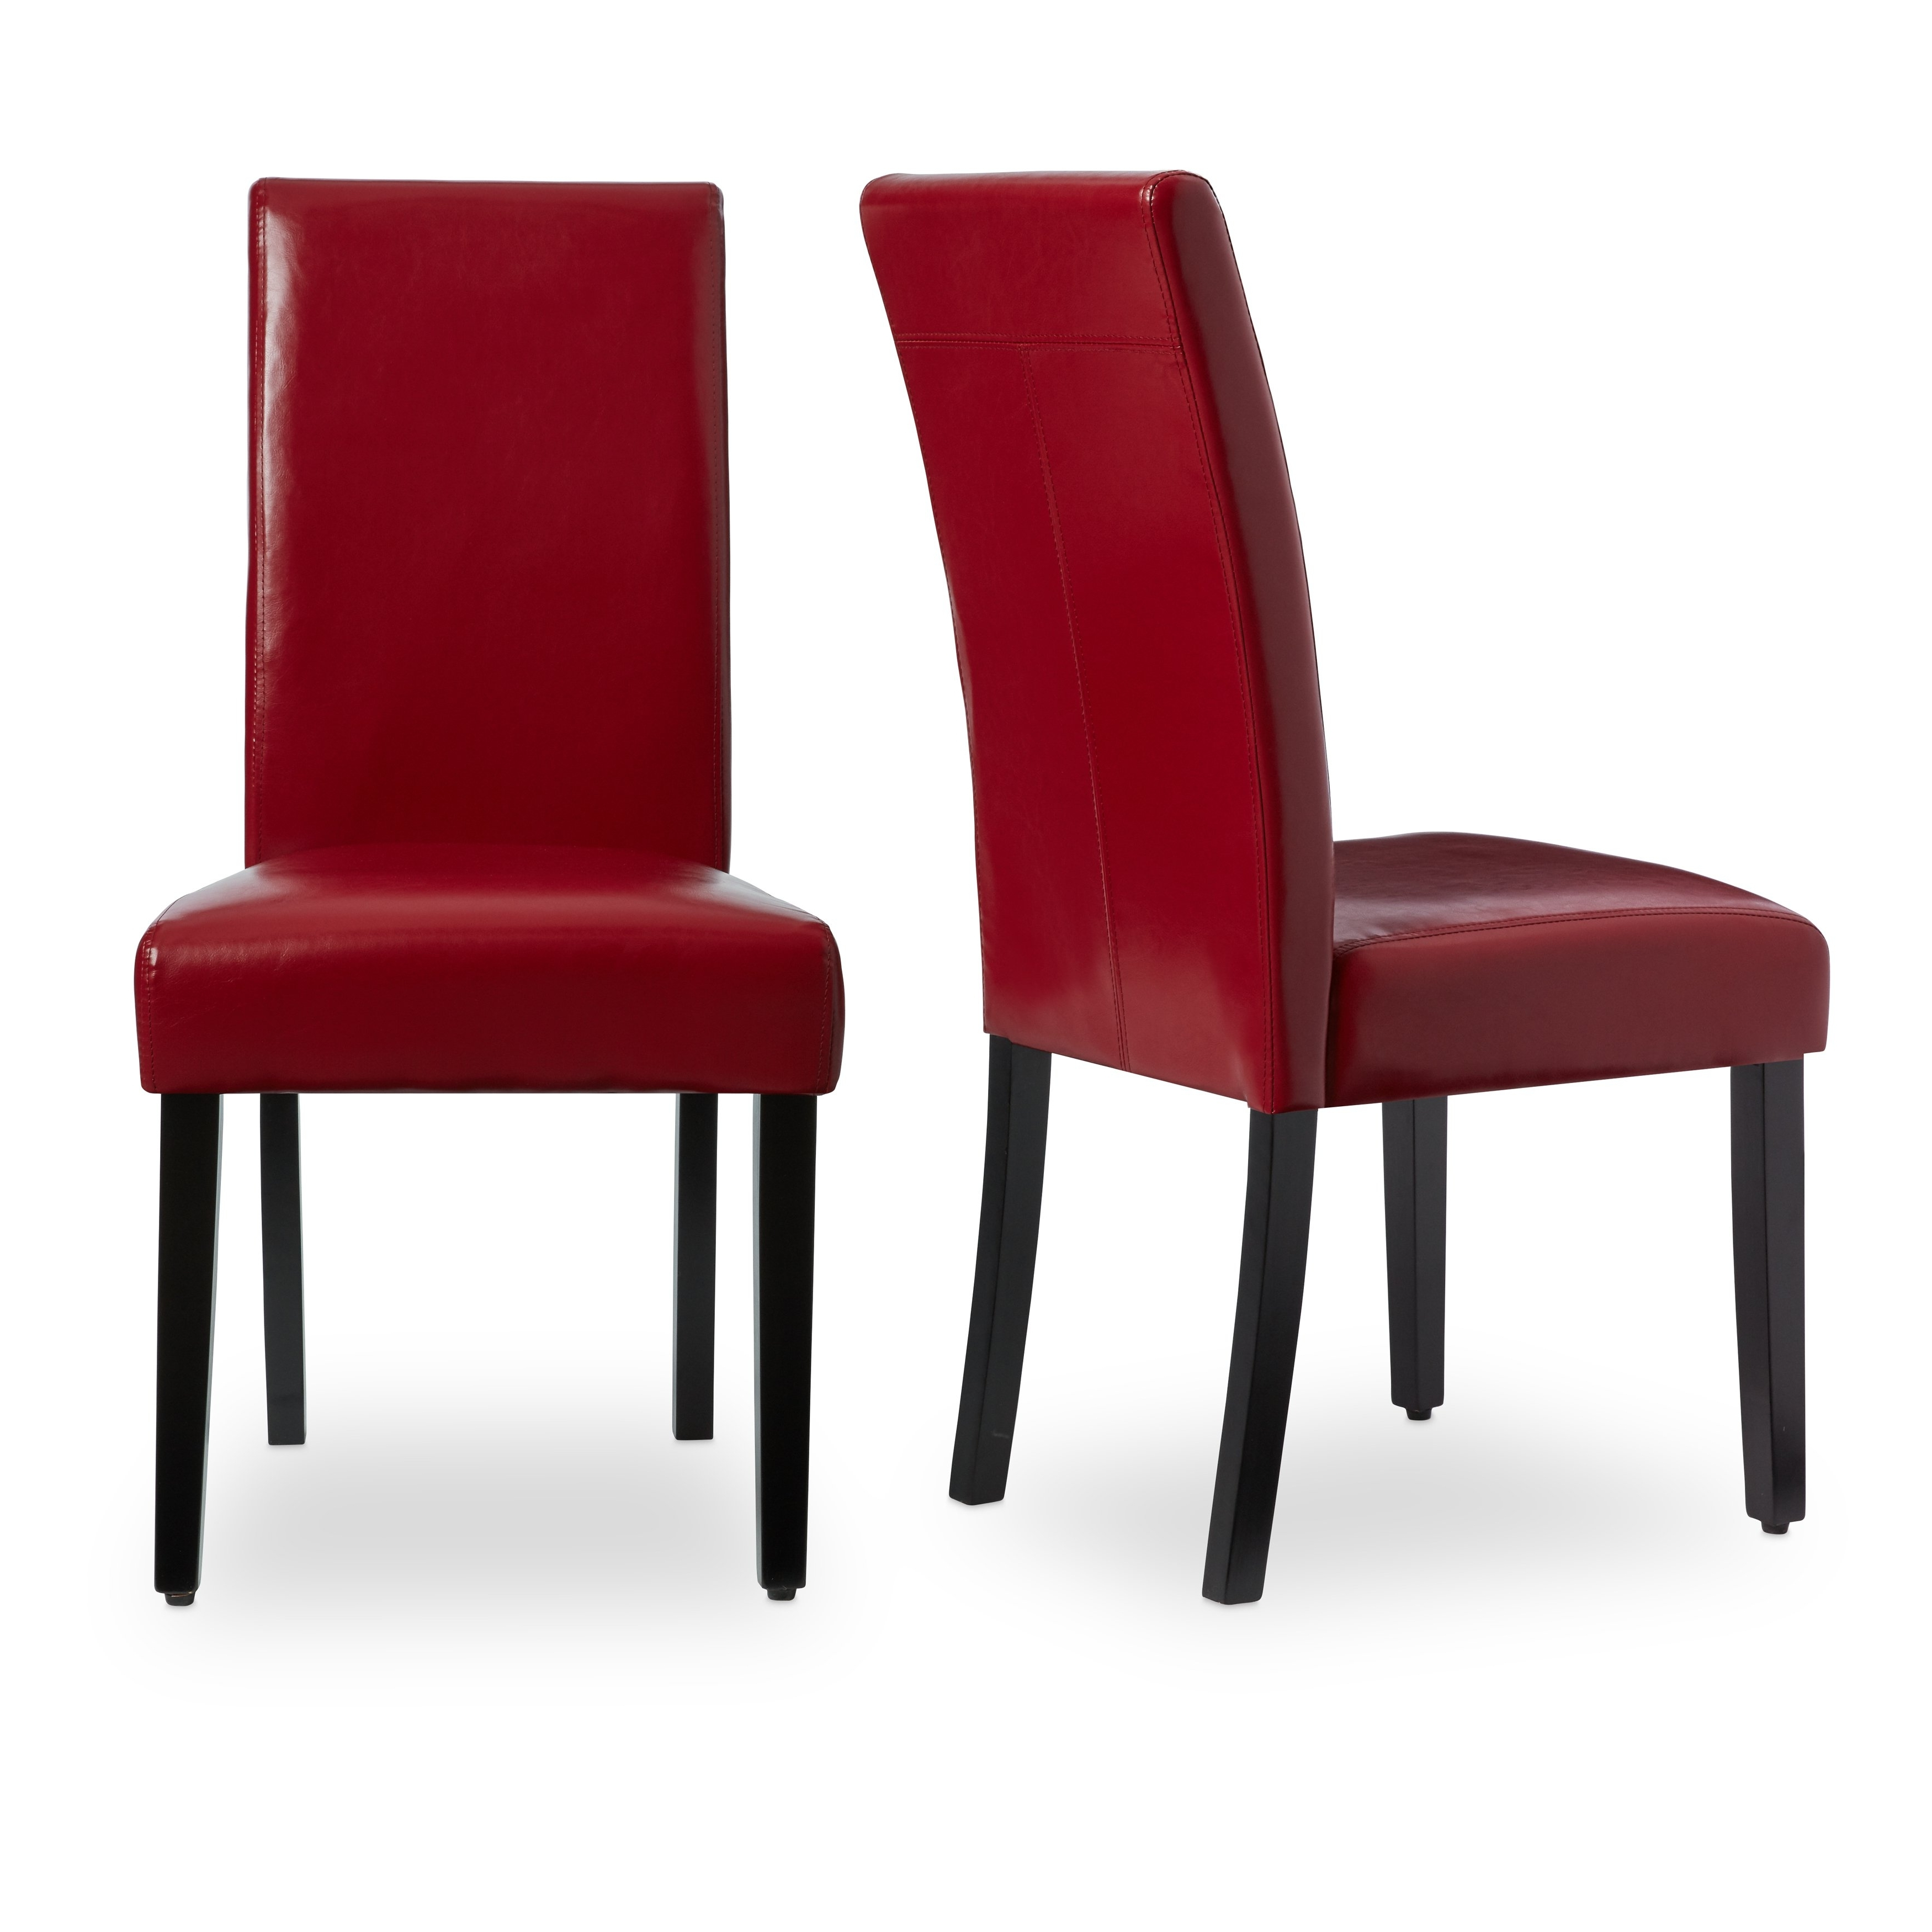 2017 Leather Dining Chairs Set Of 2 Red High Back Restaurant Upholstered intended for Red Dining Chairs